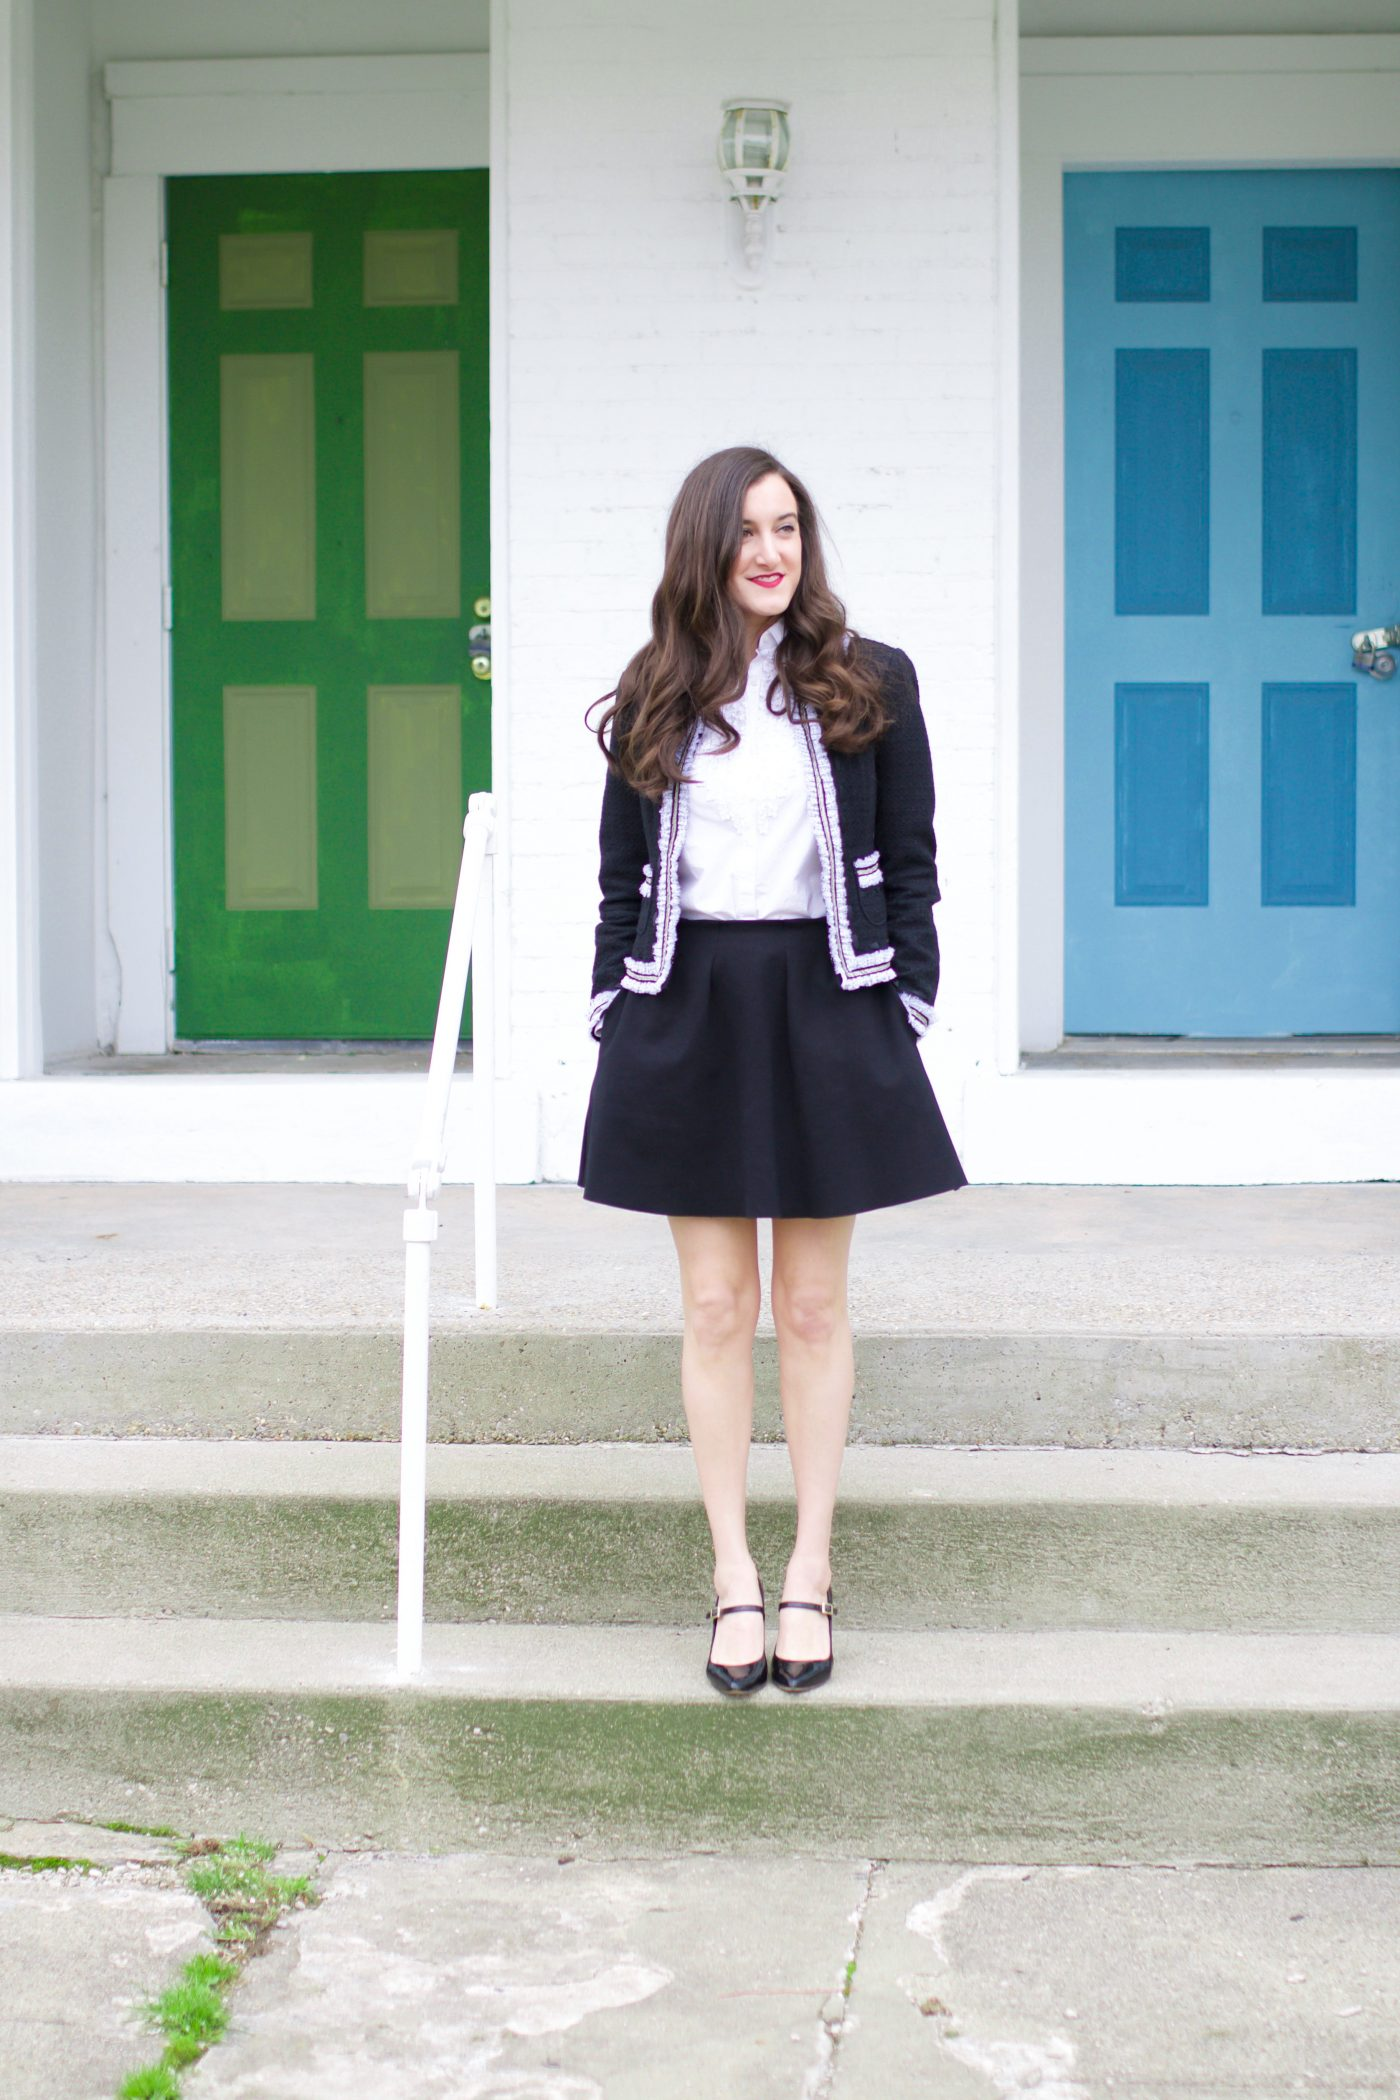 Black Skirt with Tweed Jacket